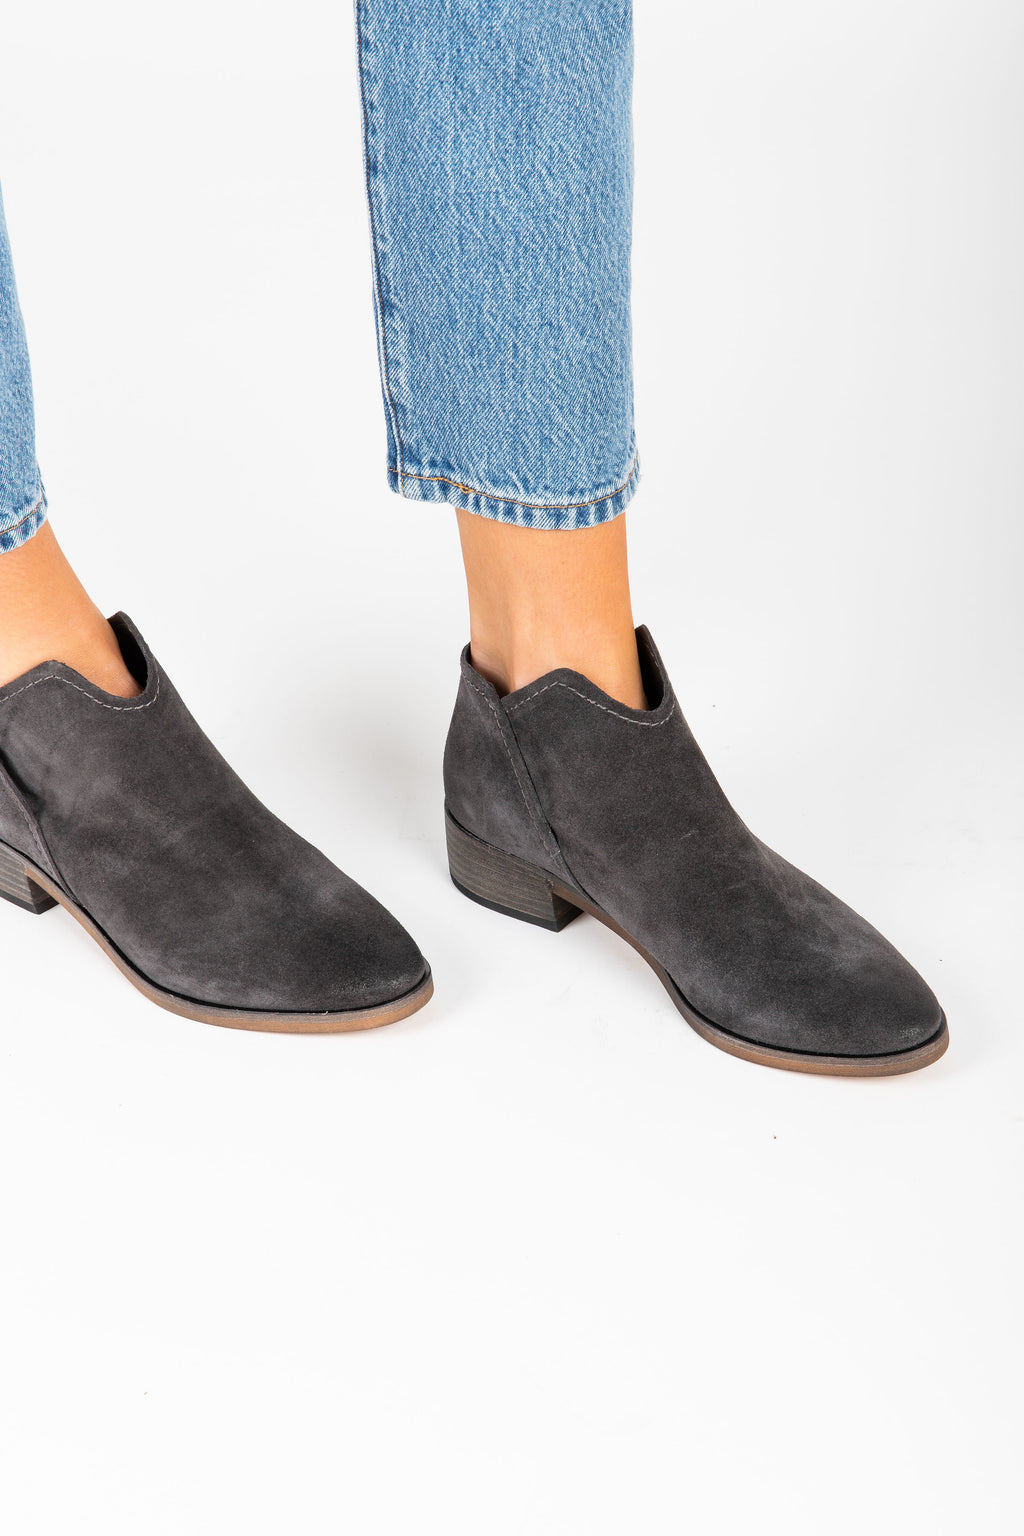 Dolce Vita: Trist Booties in Anthracite